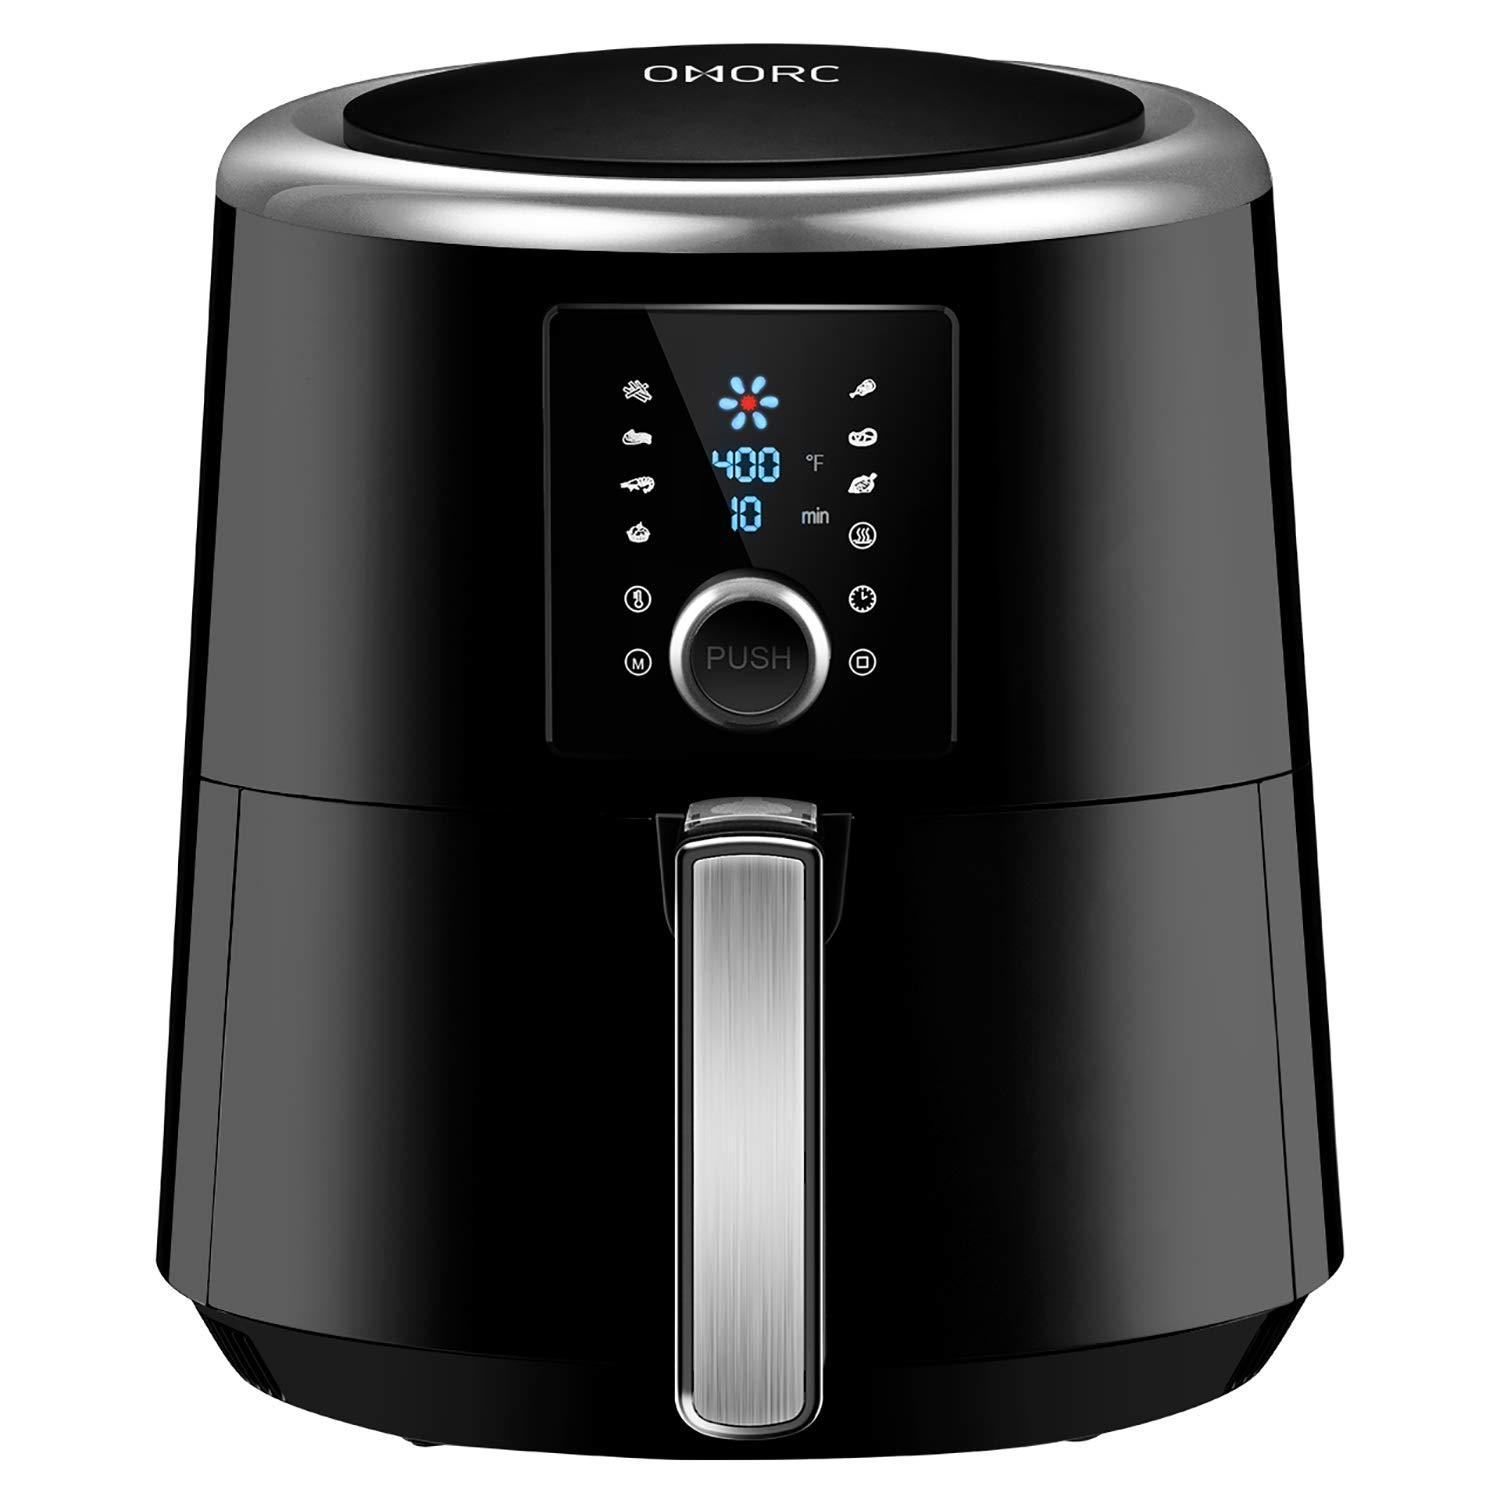 OMORC 6 quart Air Fryer, Air Fryers, Instant Temp/Time Control (for Wet Finger) & LED Touchscreen, 1800W Presets for Air Frying/Roast/Bake/Keep Warm, Dishwasher Safe, Nonstick, 2-Year Warranty(ME122)